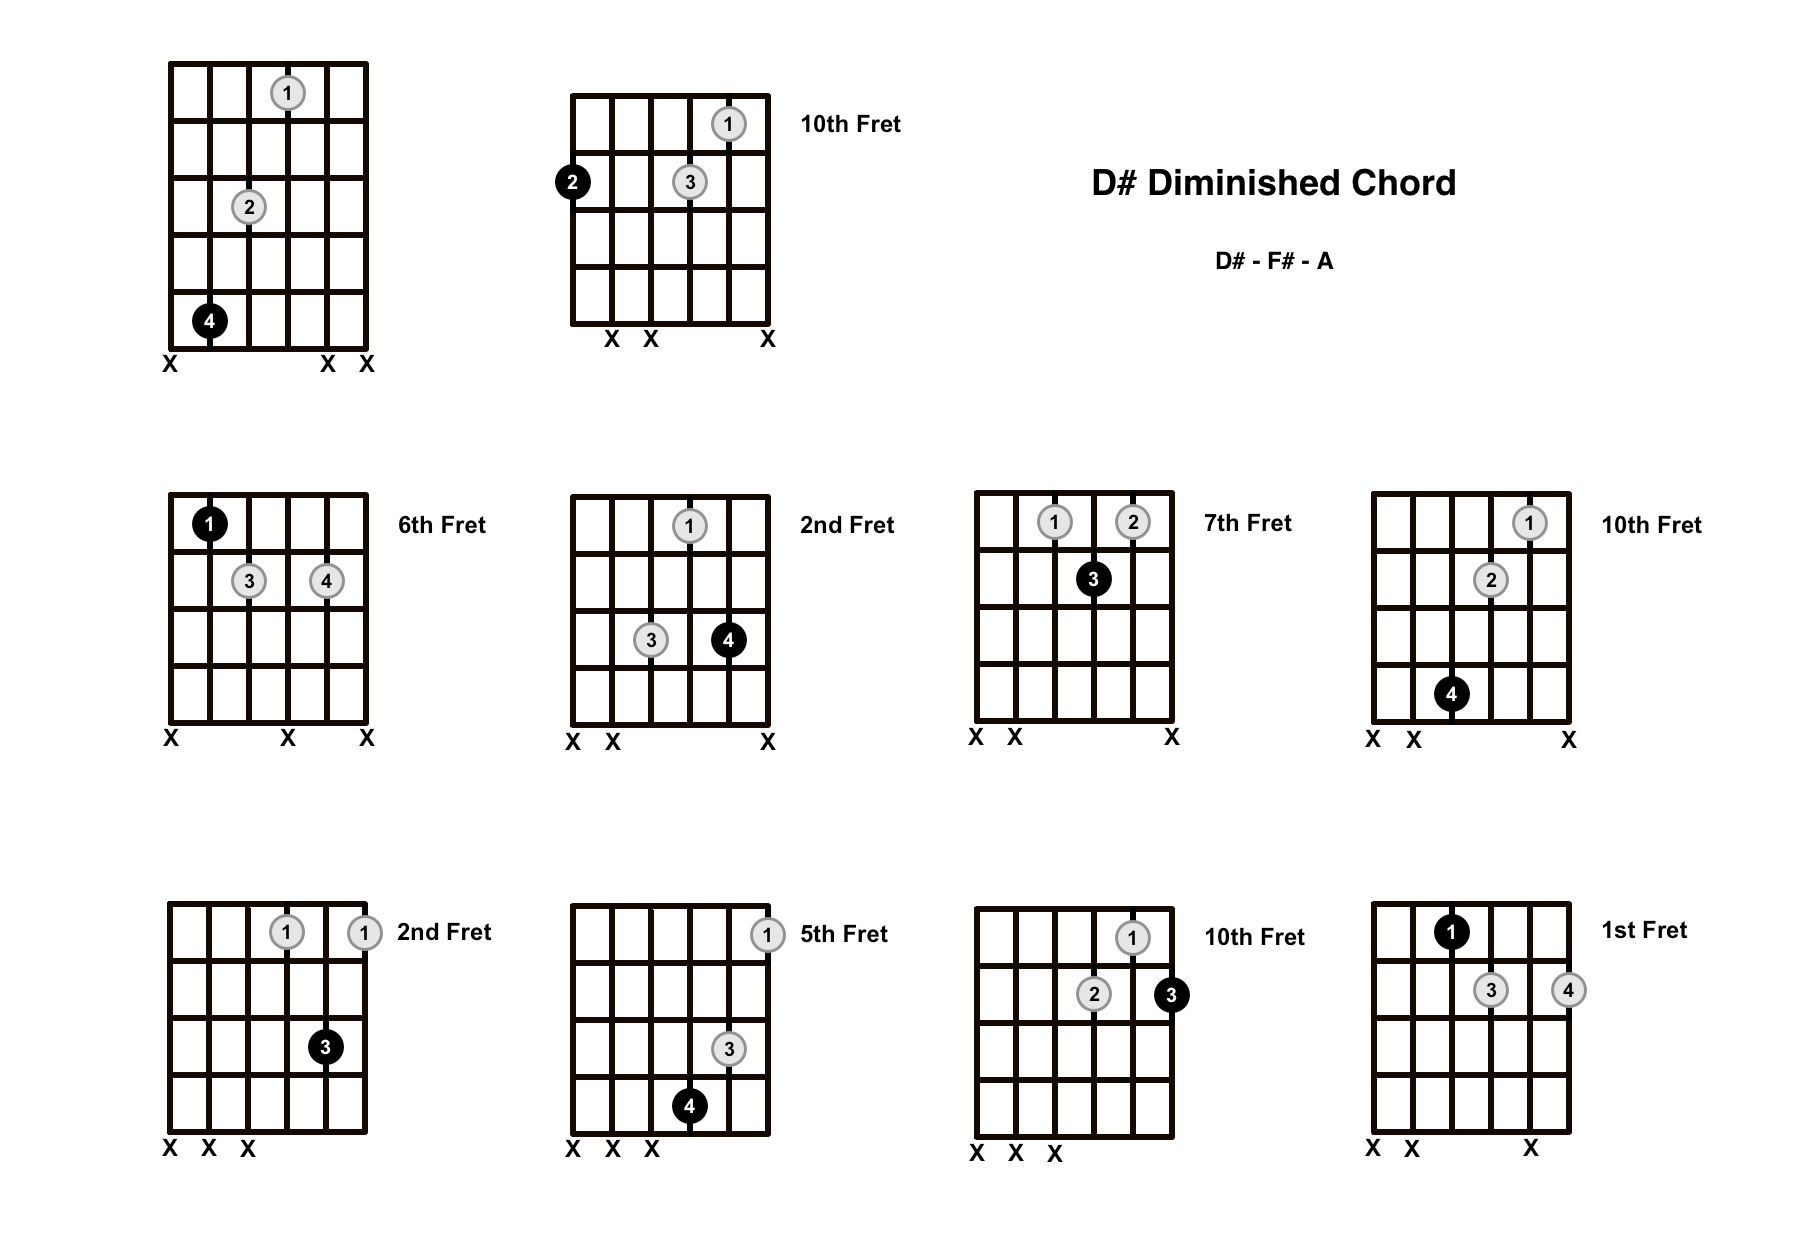 D Sharp Diminished Chord on the Guitar (D# dim)